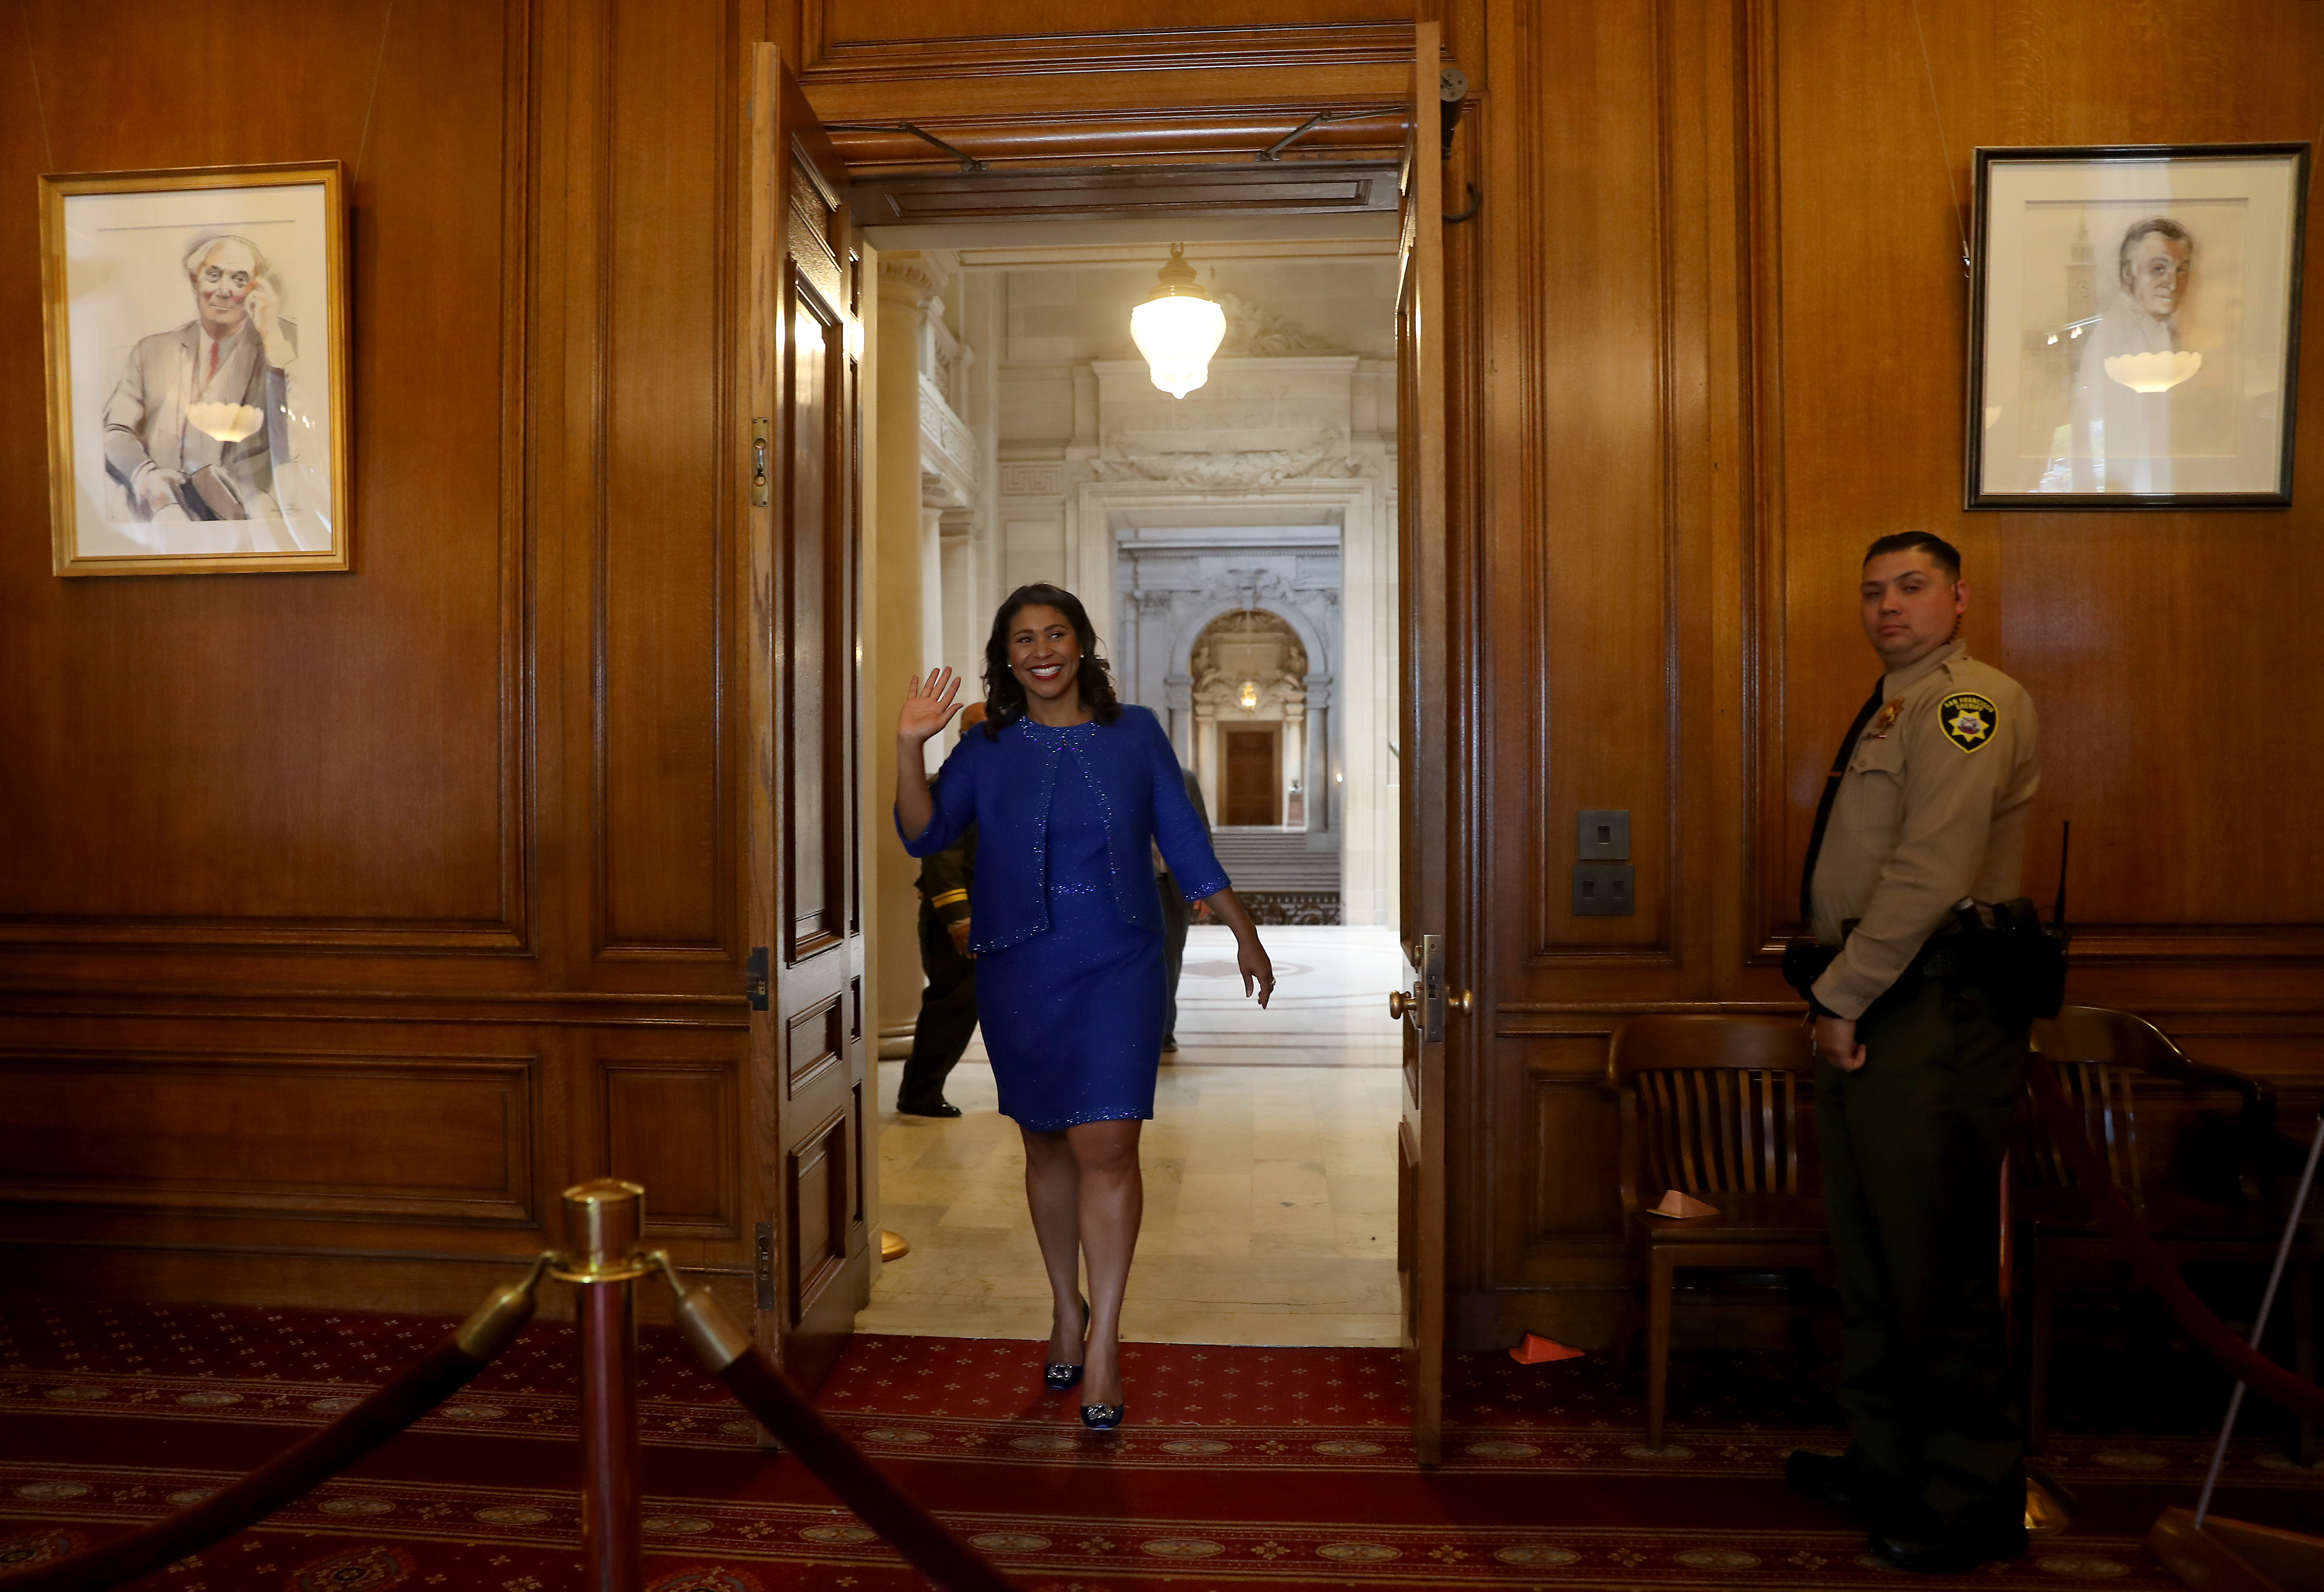 <div class='meta'><div class='origin-logo' data-origin='none'></div><span class='caption-text' data-credit='The Chronicle'>Mayor London Breed walks to her office following her inauguration ceremony on Wednesday, July 11, 2018, in San Francisco.</span></div>